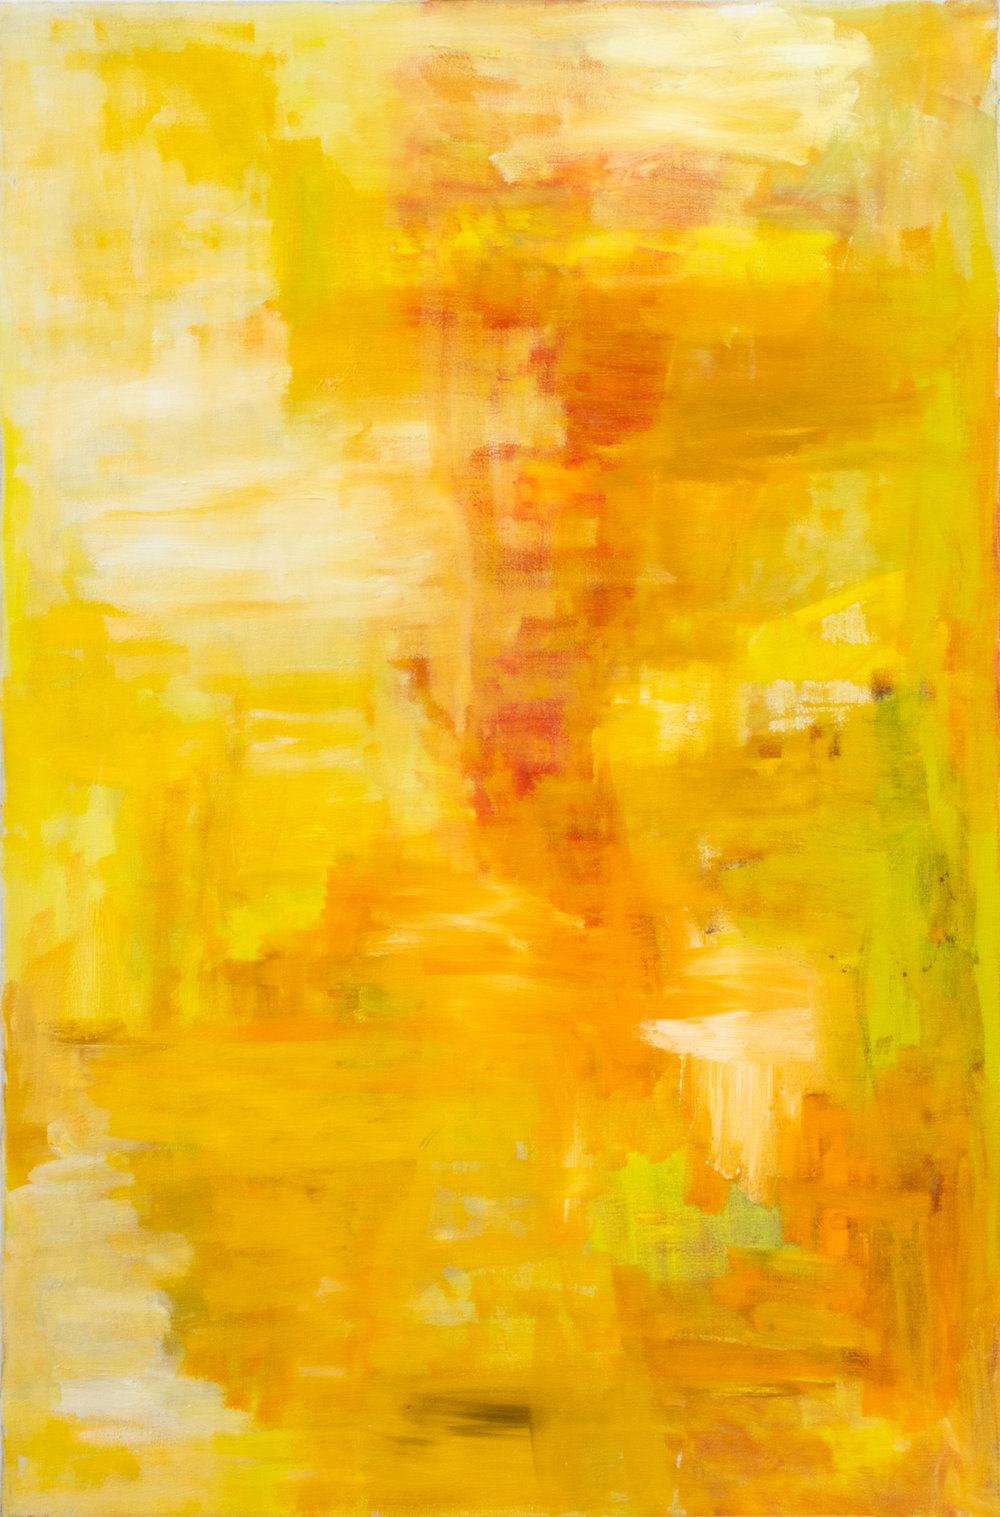 Untitled (Yellow Abstract)